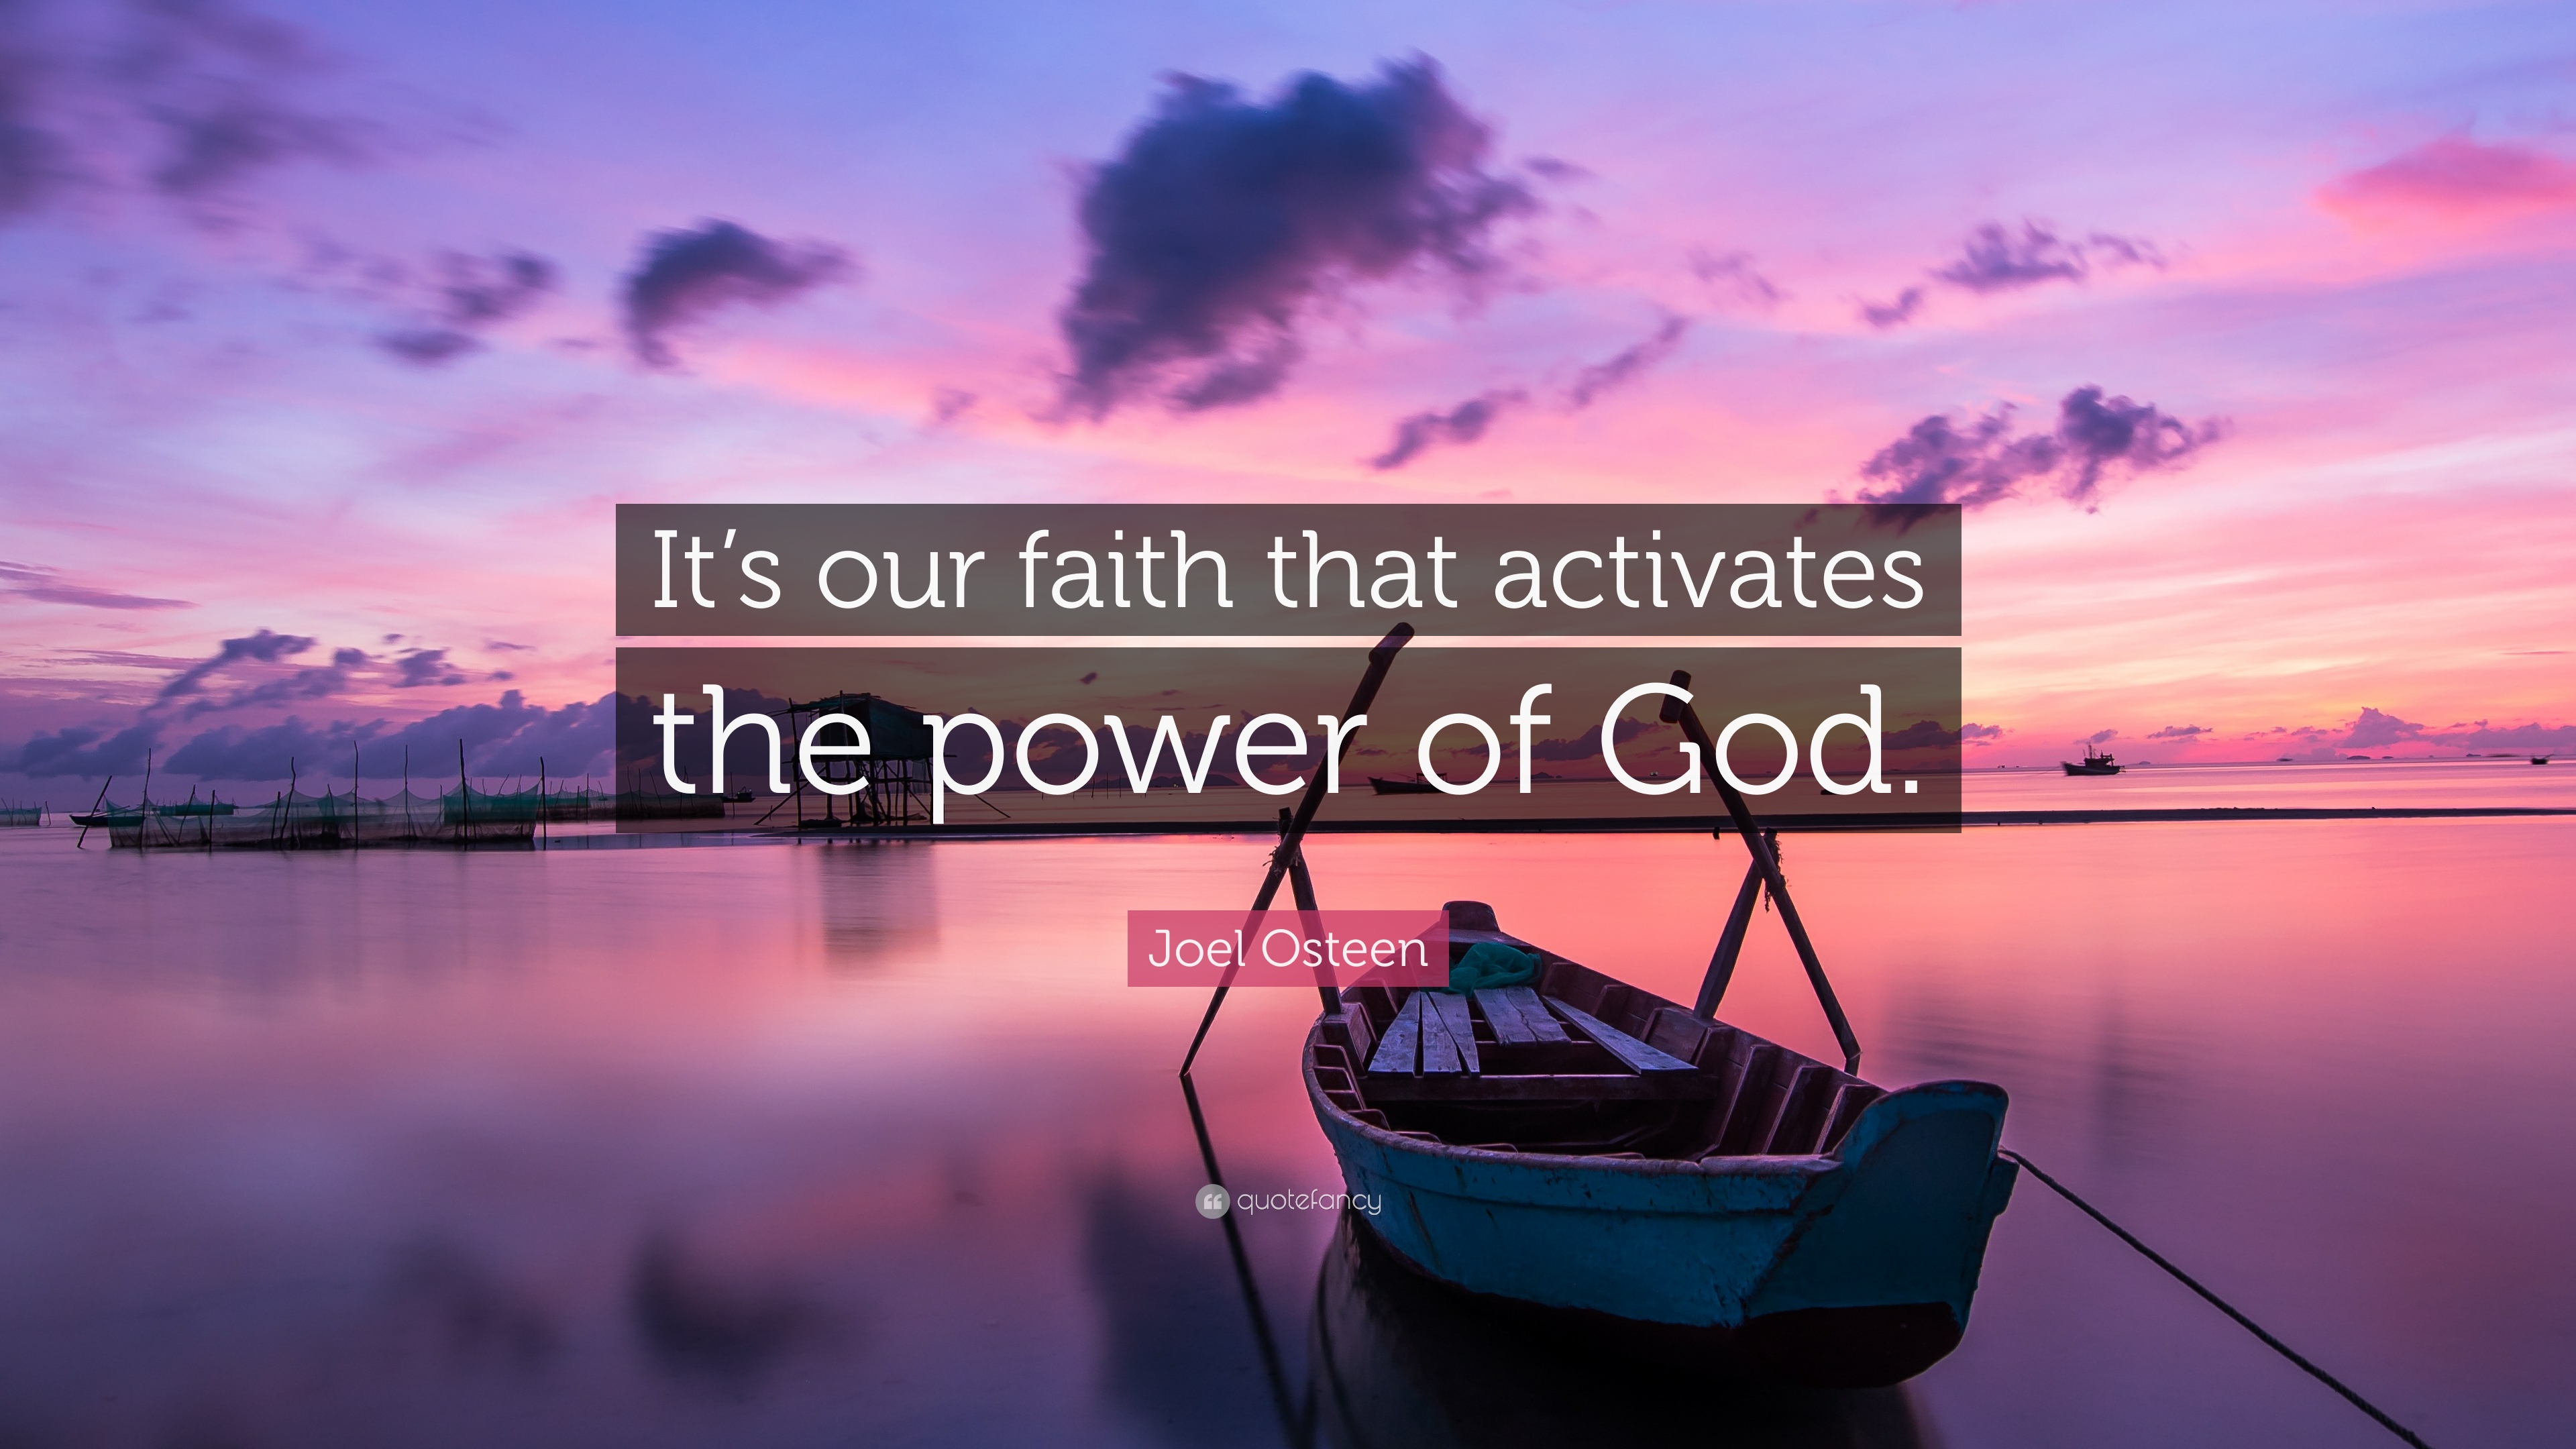 joel osteen quote �it�s our faith that activates the